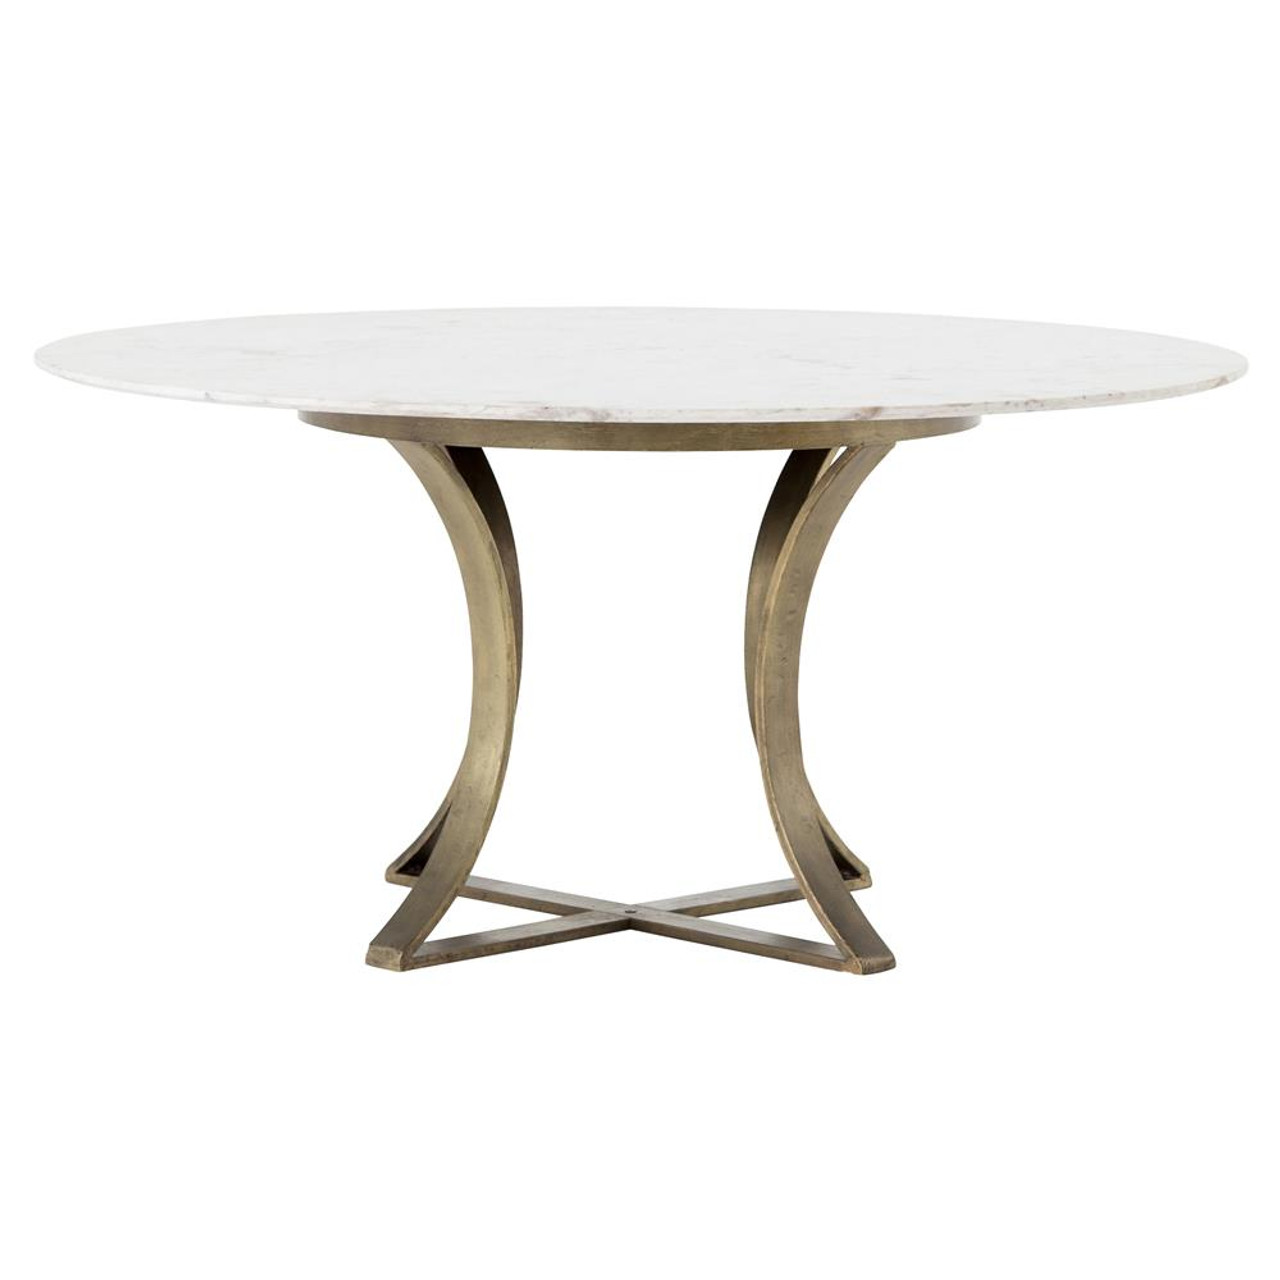 Gage White Marble Antique Brass Leg Round Dining Table 60 Zin Home